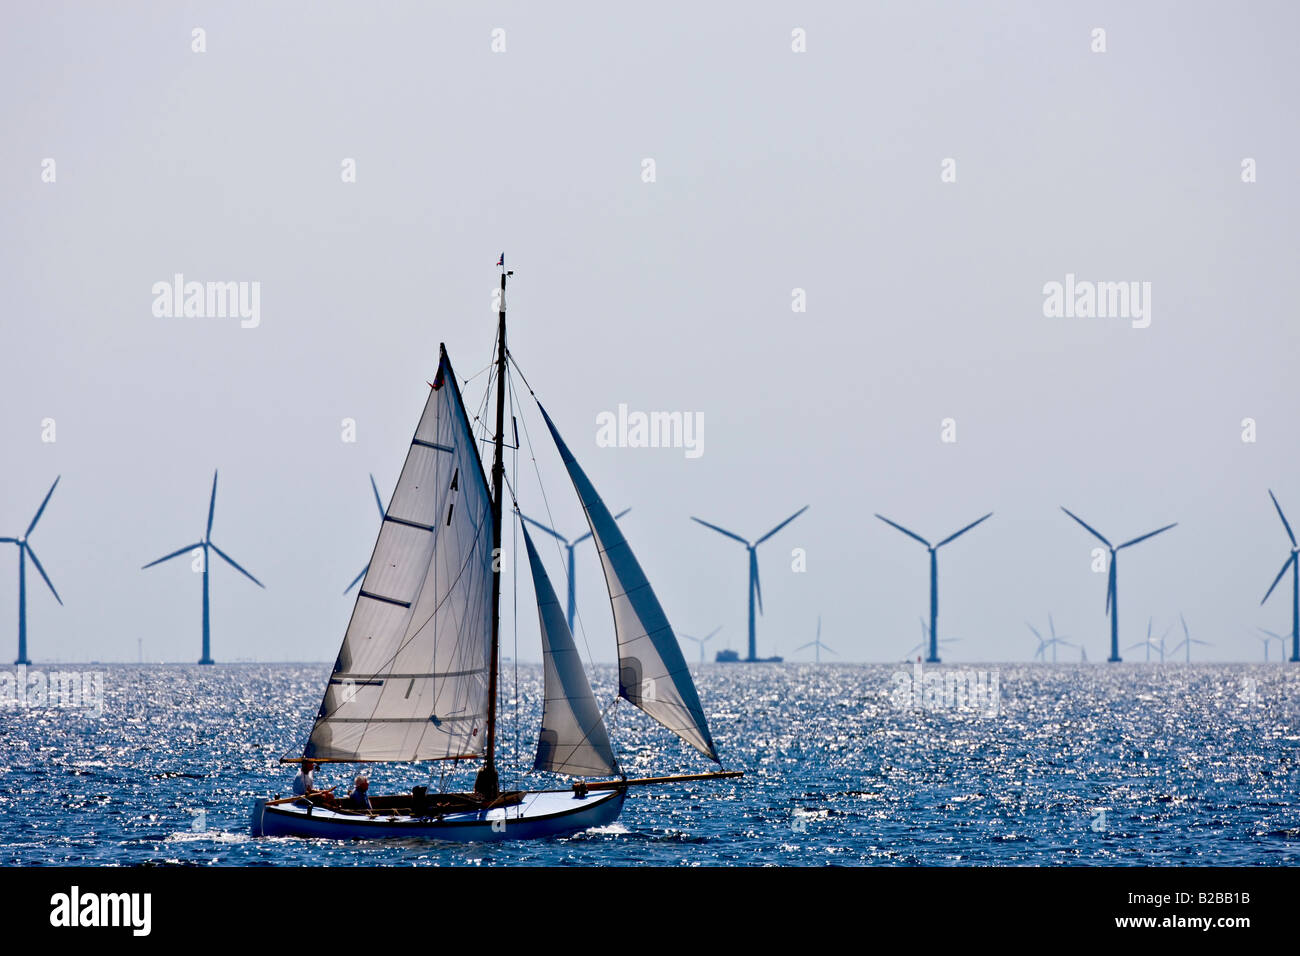 Sailing boat in front of an off shore wind park in the Sound between Denmark and Sweden - Stock Image